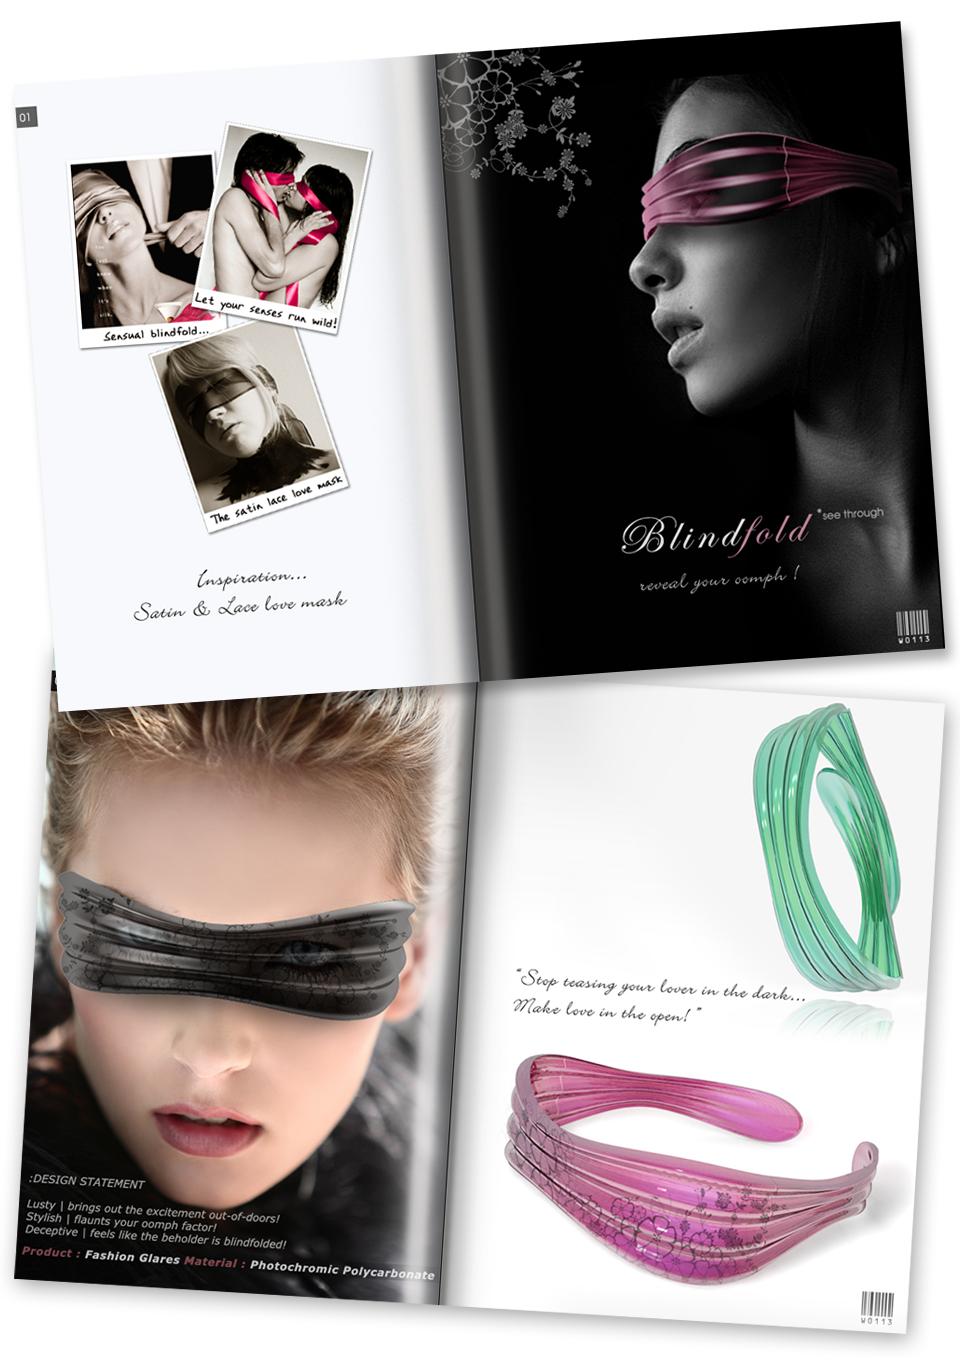 Blindfold_Eyewear-design-by-Paul-Sandip